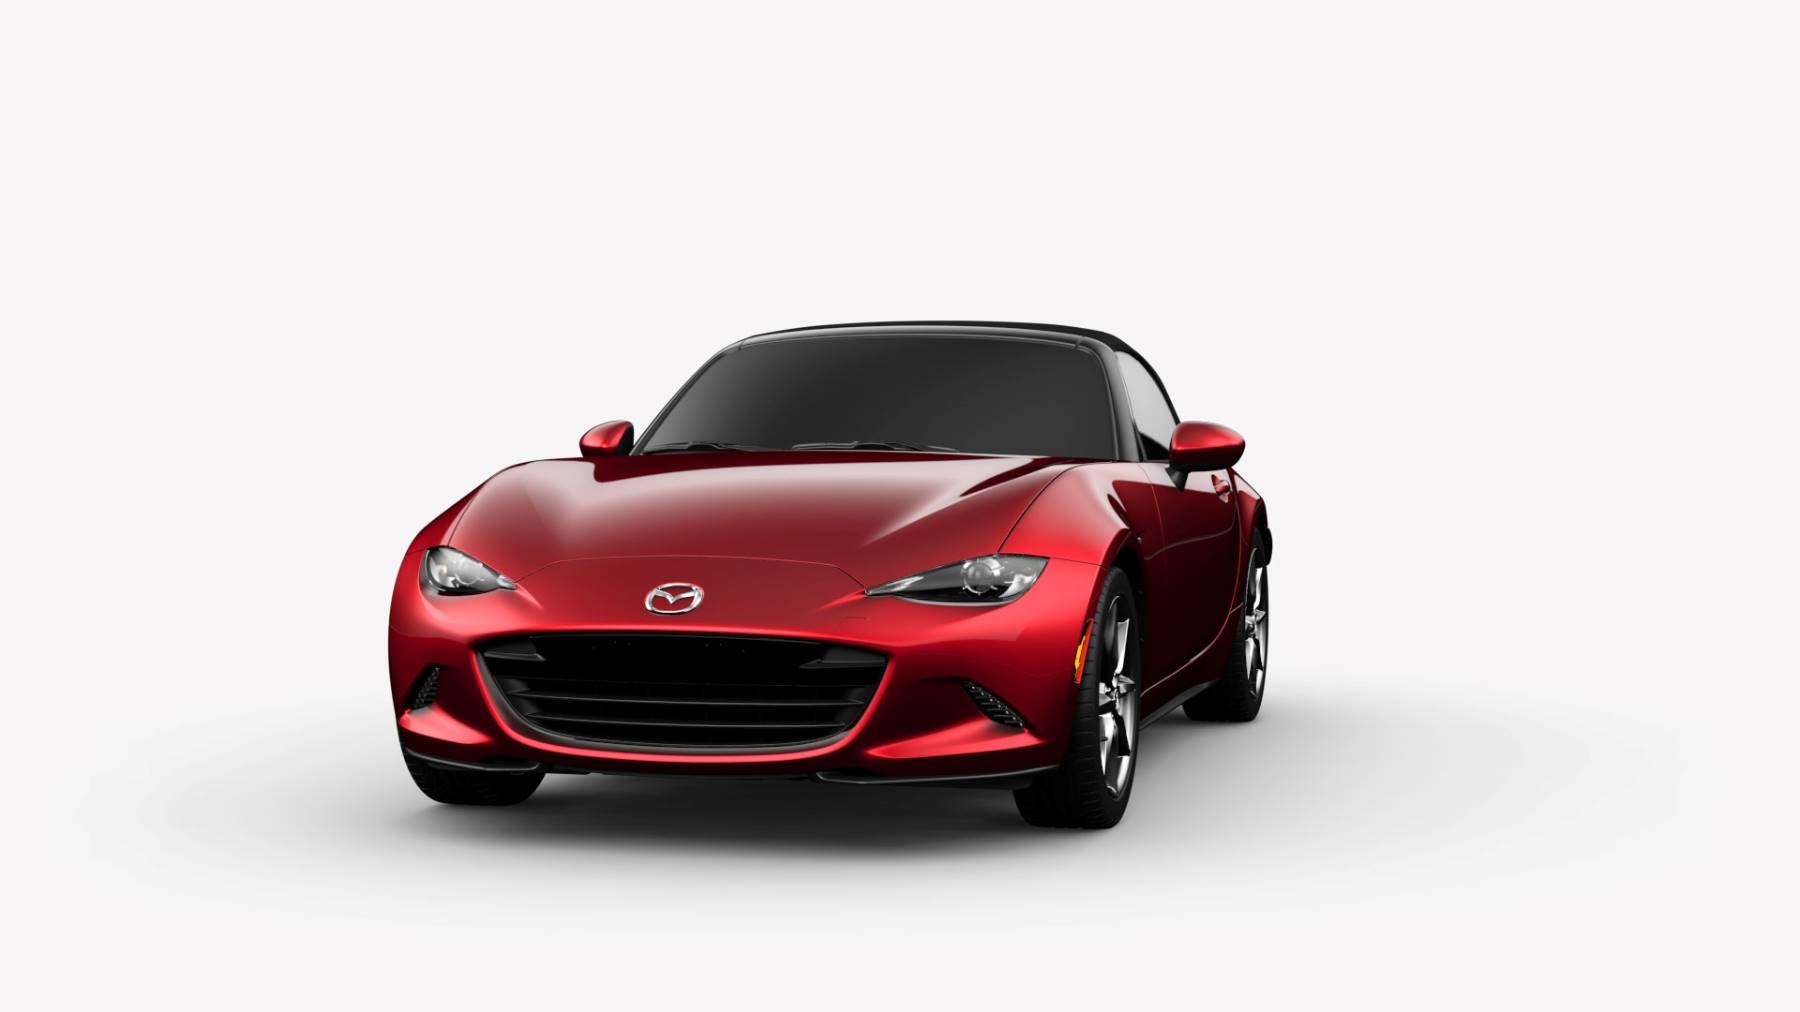 news business cx redesigned test small story upscale mazdcx aroundregion vib price design times hquiet suv jul kennedy mazda quiet the drive offers vibe a value has at